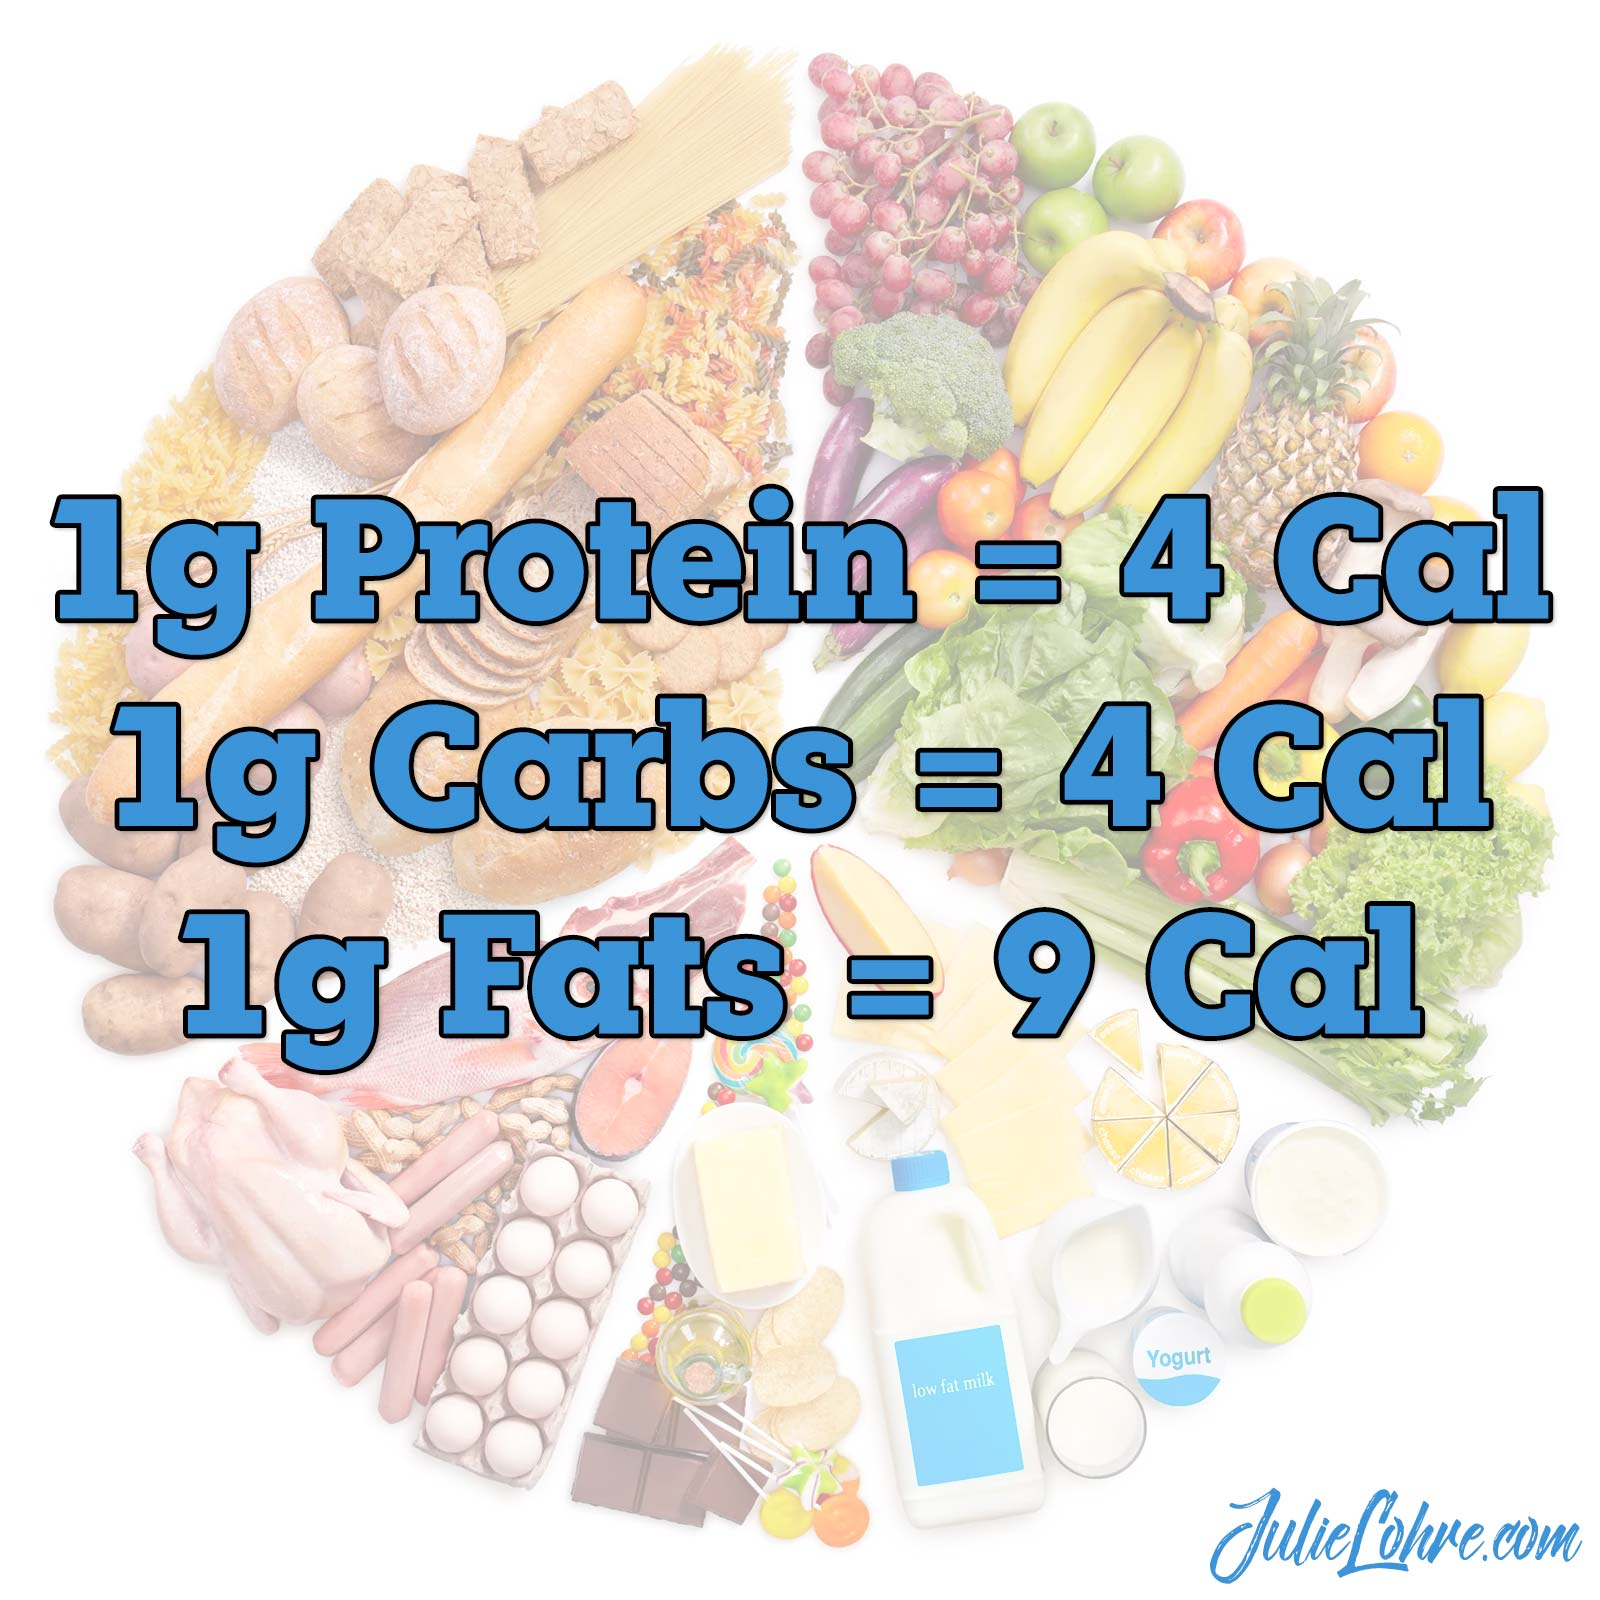 1g of Protein = 4 Calories 1g of Carbohydrates = 4 Calories 1g of Fat = 9 Calories